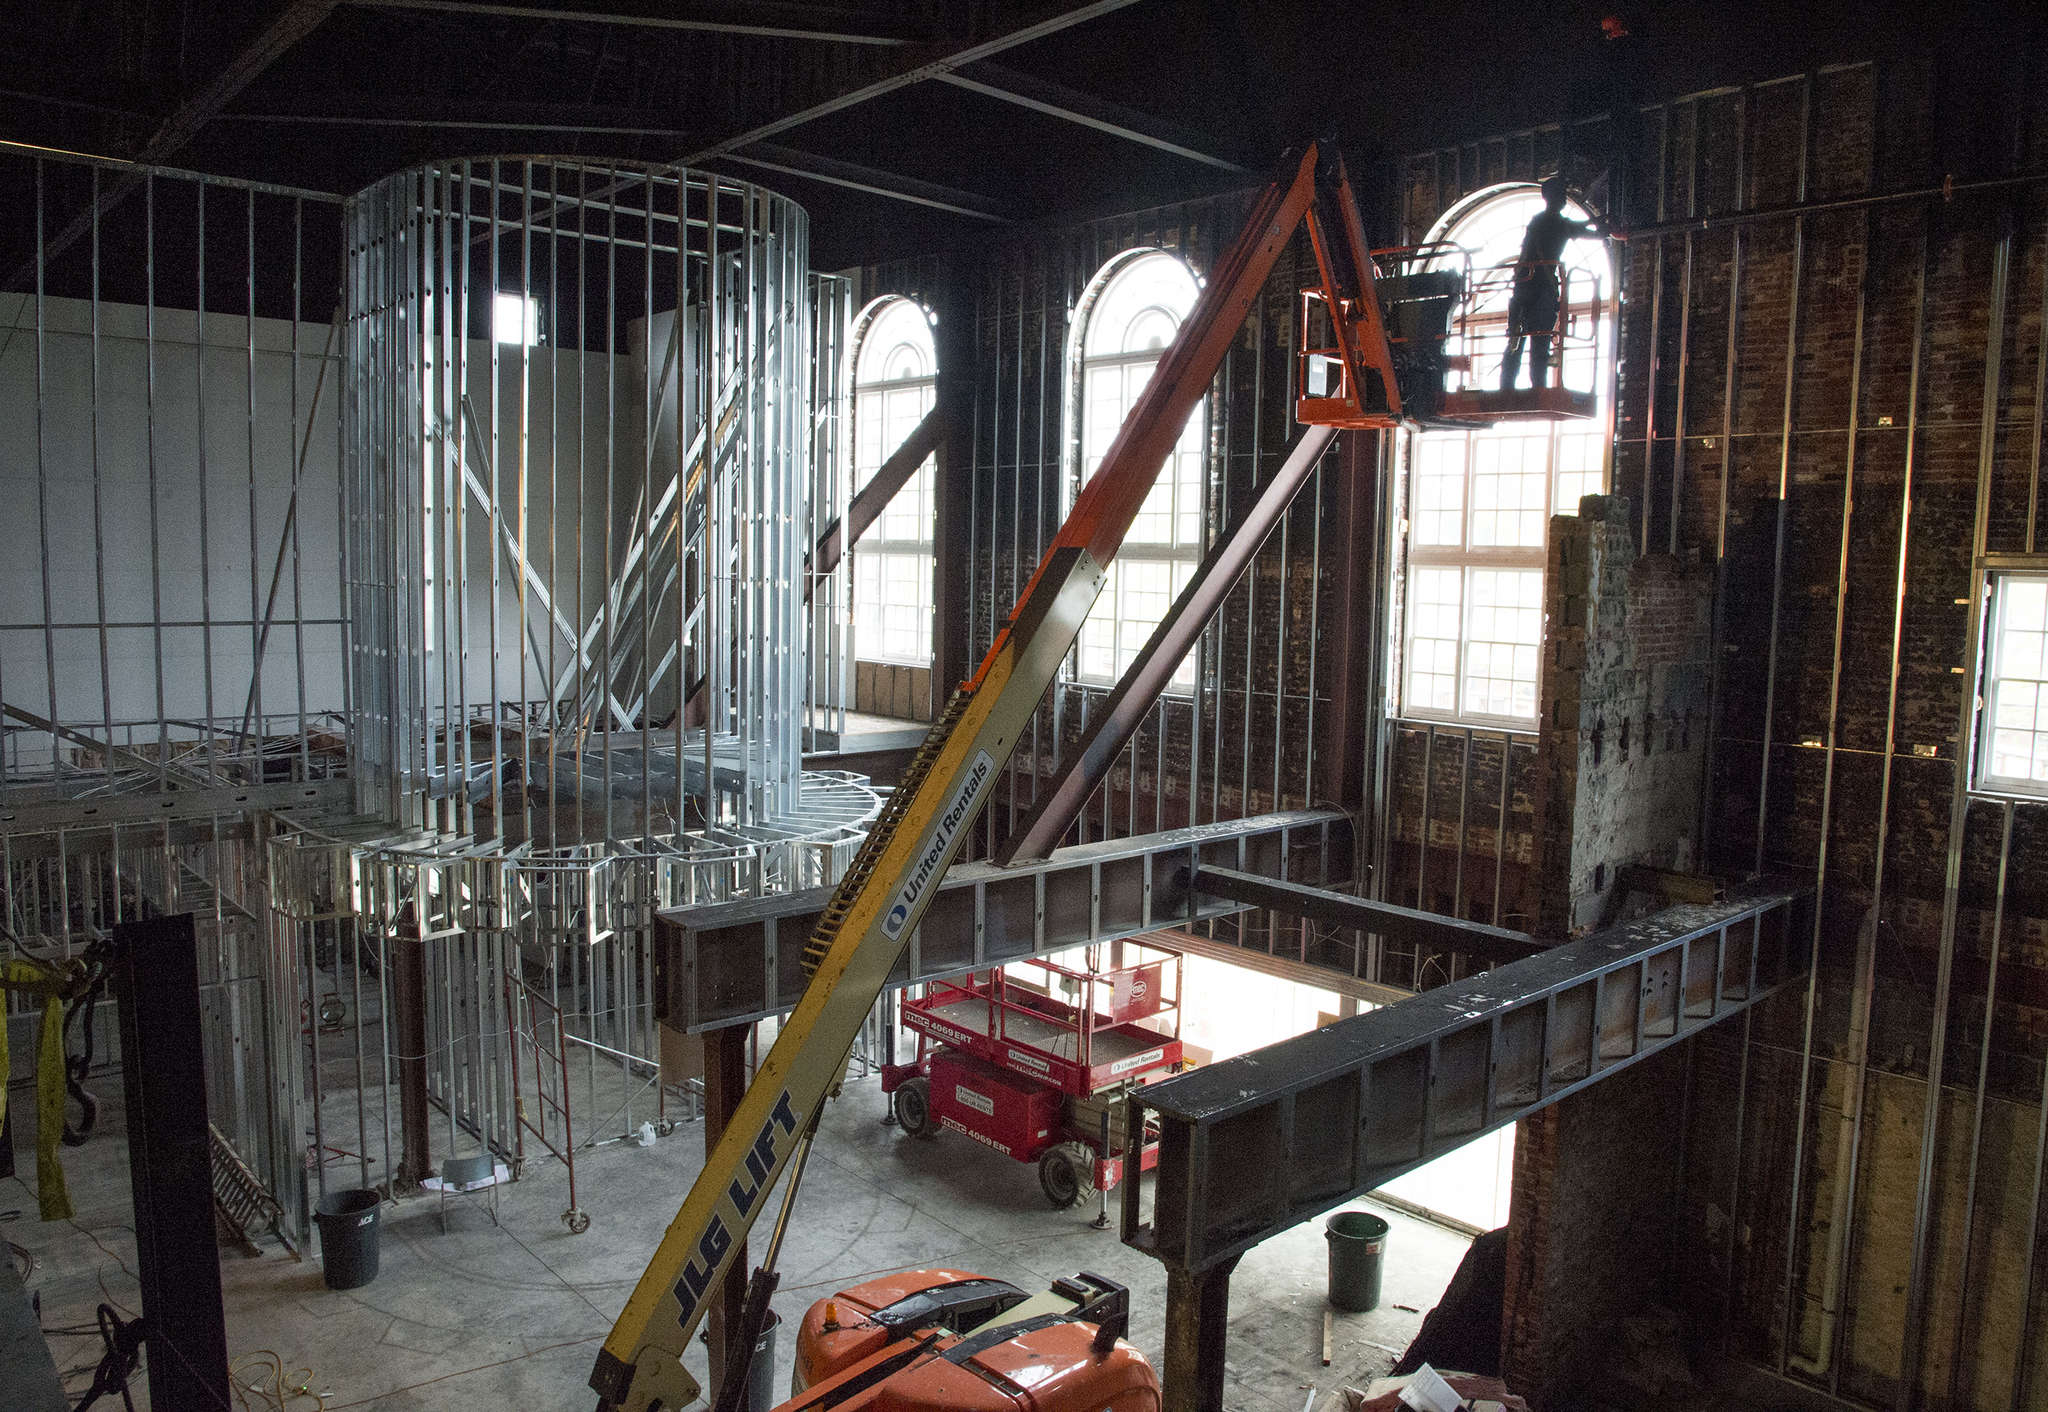 Work goes on at the Westmont Theater. Built in 1927, it will become a Planet Fitness center.